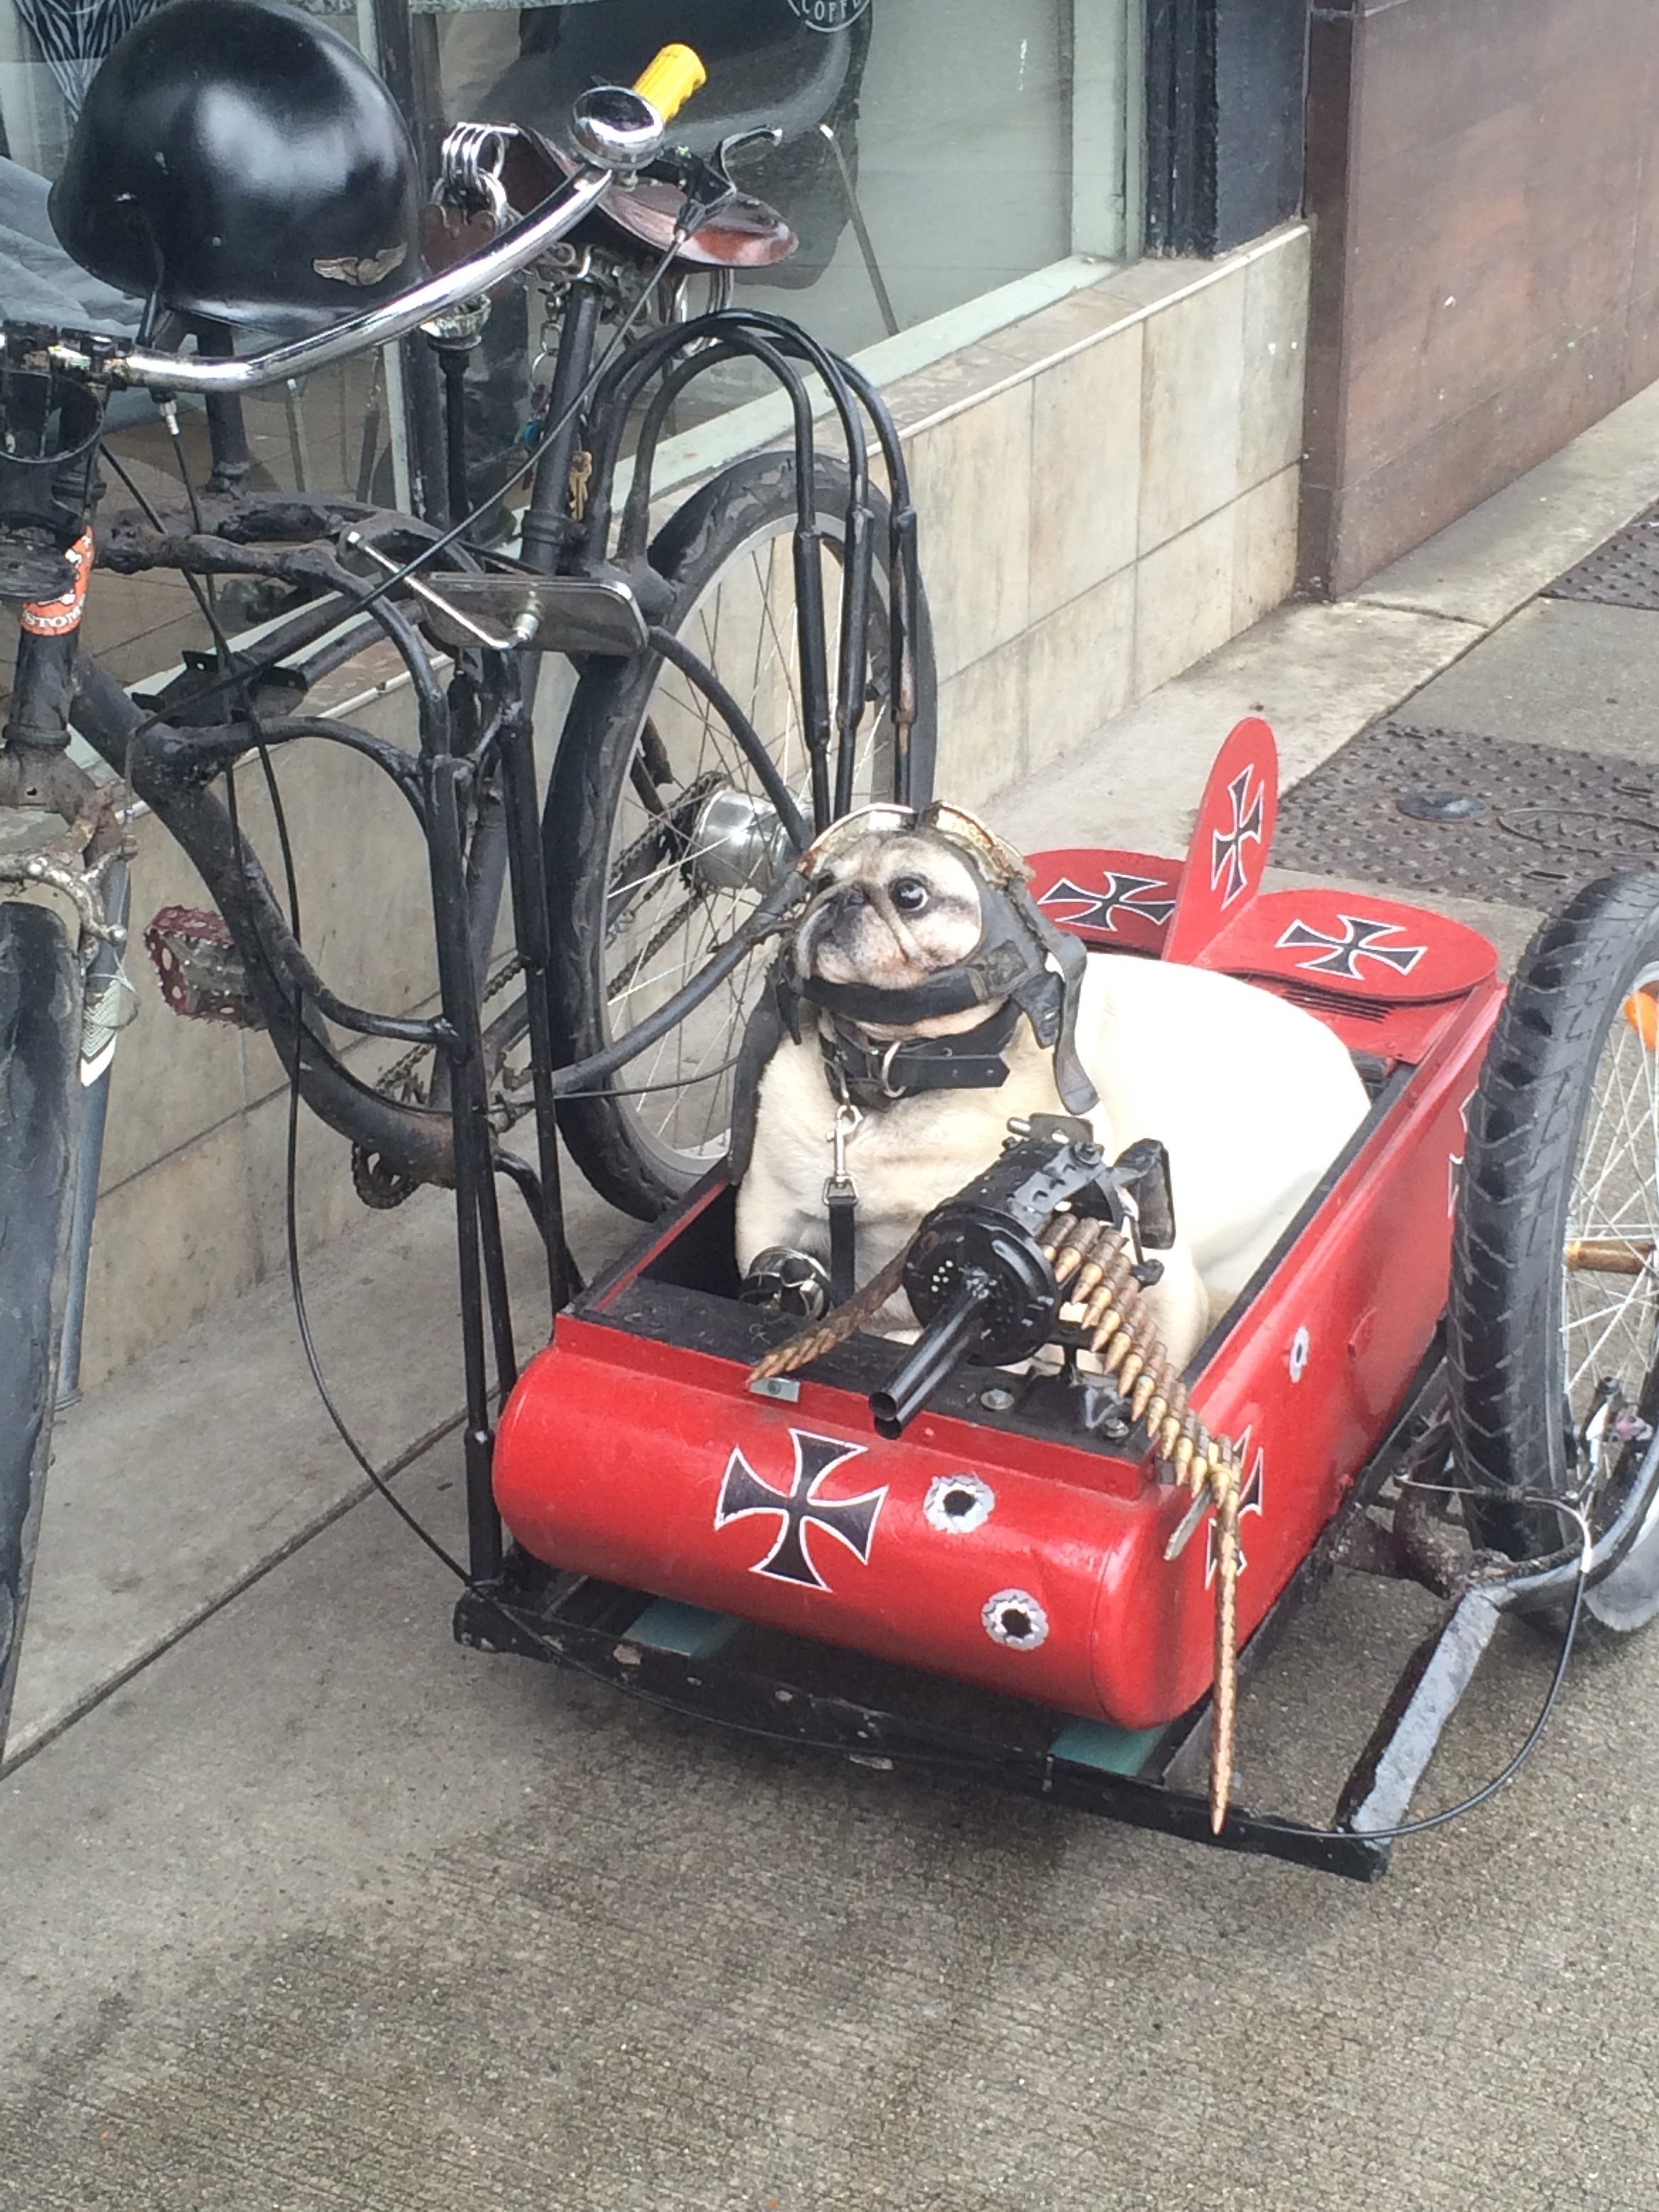 A guy in my city often rides around with his pug like this